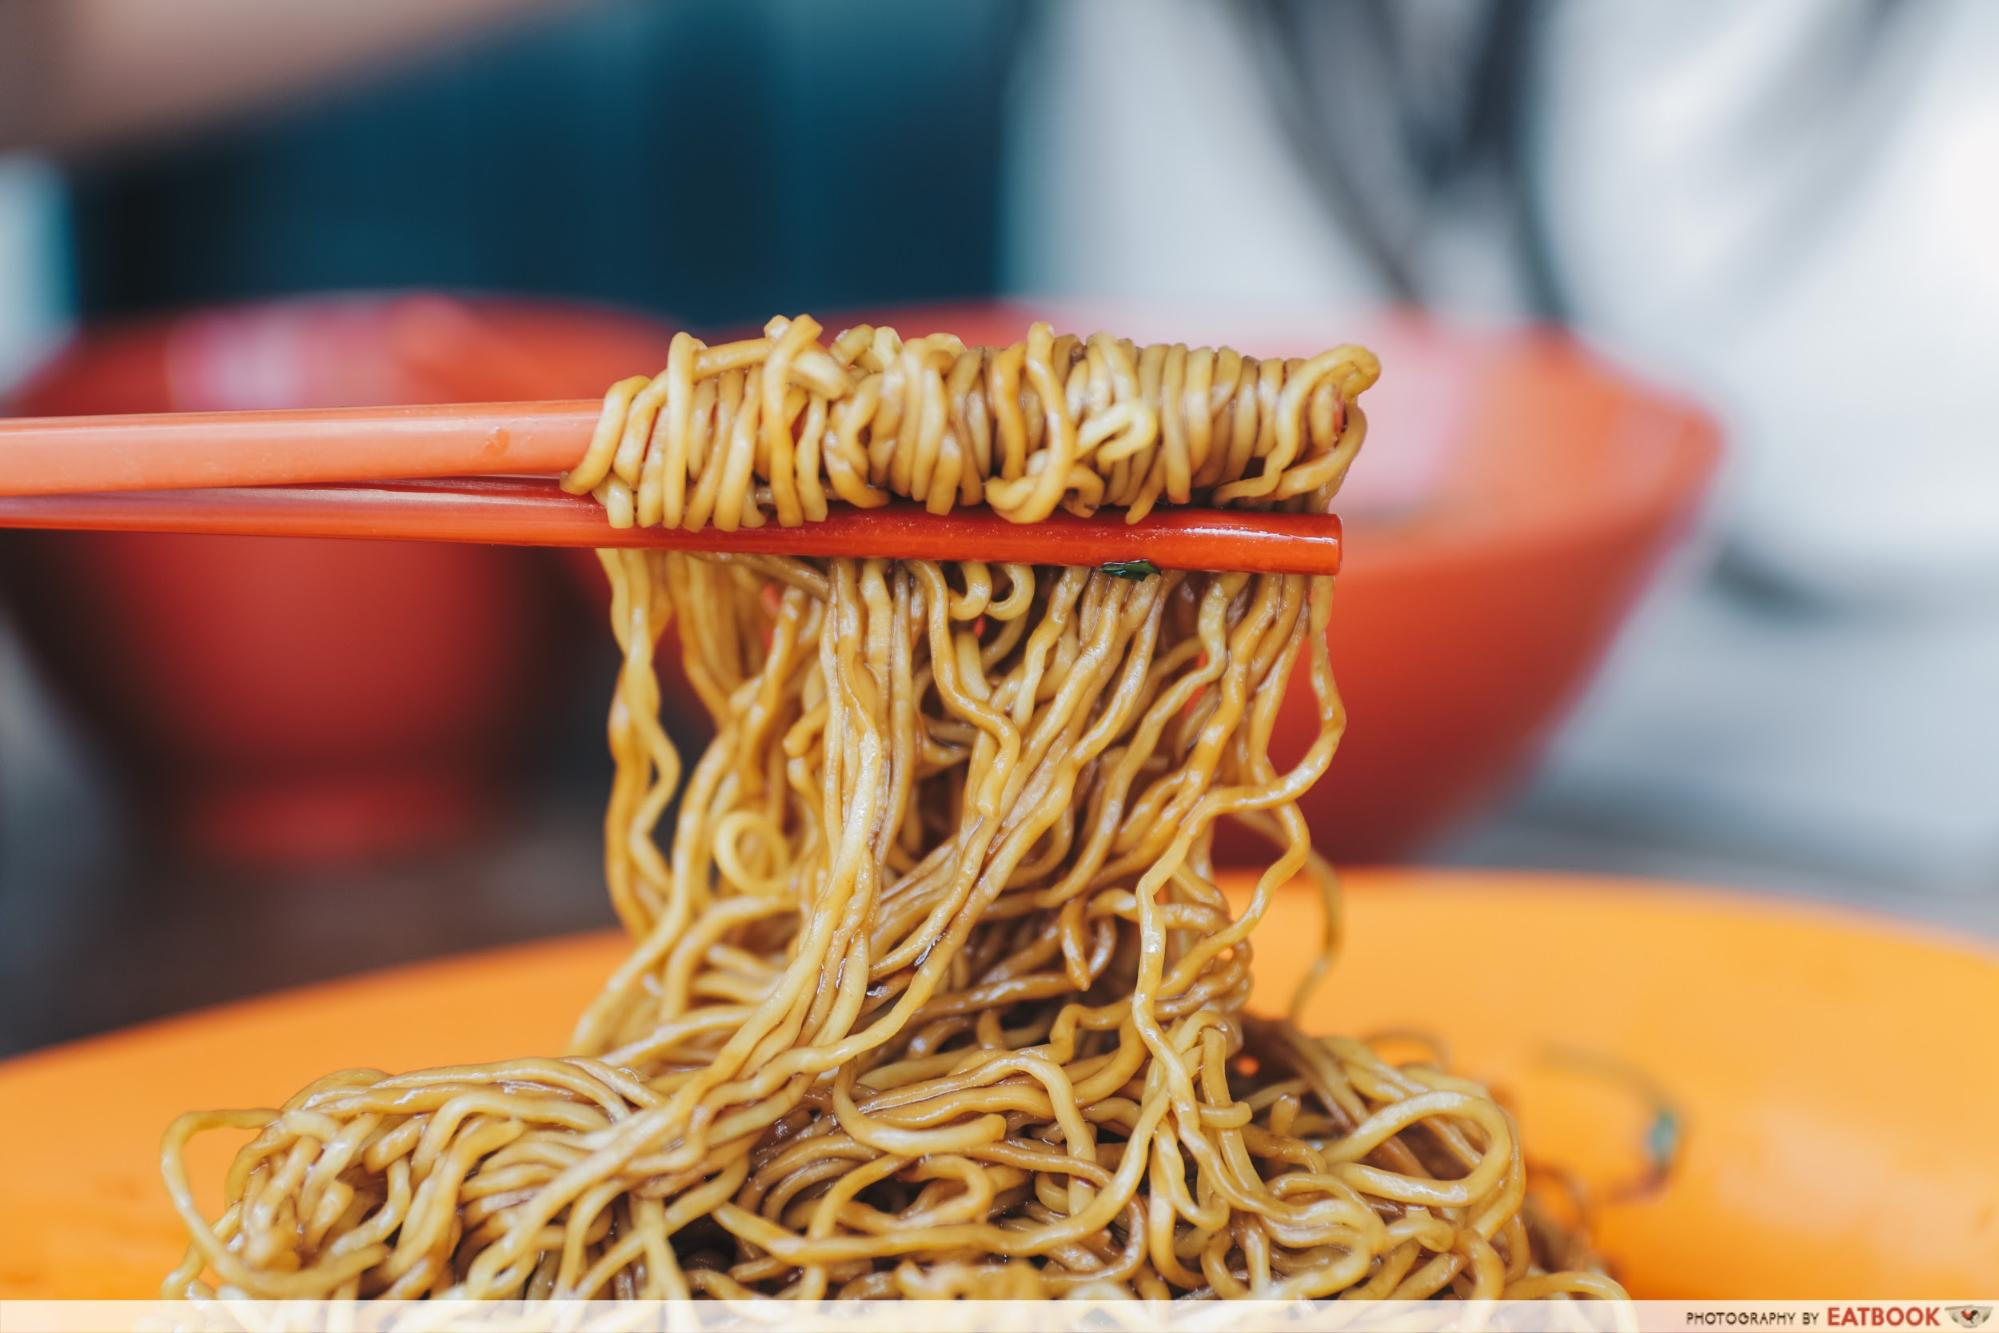 Battle of Chew Kee and Chiew Kee - Chew Kee's noodles